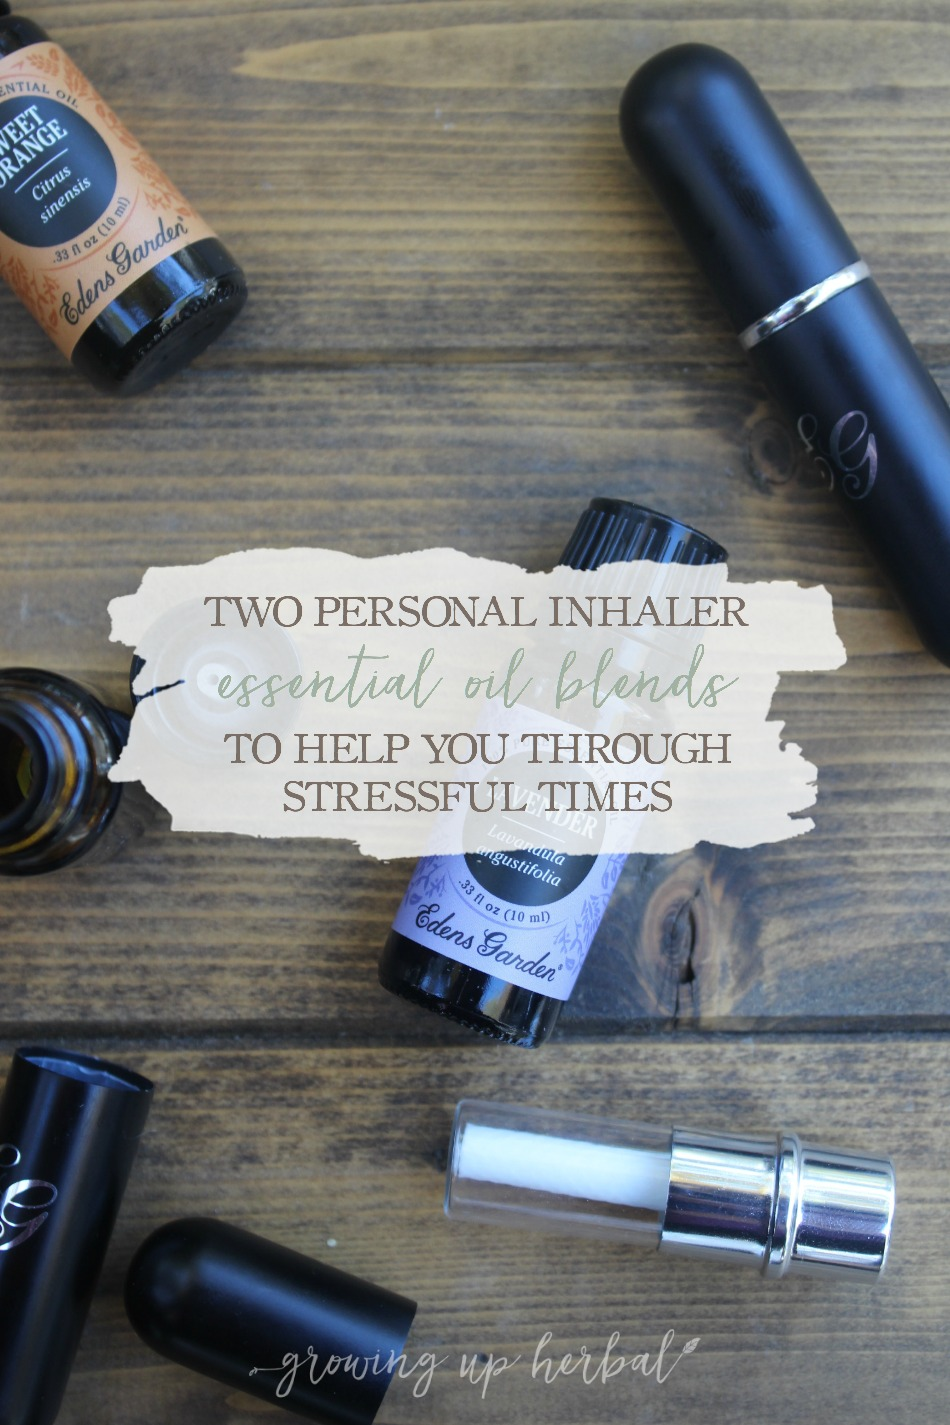 Two Personal Inhaler Essential Oil Blends To Help You Through Stressful Times | Growing Up Herbal | We all have to manage stress in our lives. Thankfully there are things like essential oils and herbs to help us do it. Get the recipe for two essential oil blends to use in your personal inhaler to help you deal with stress when you need to.